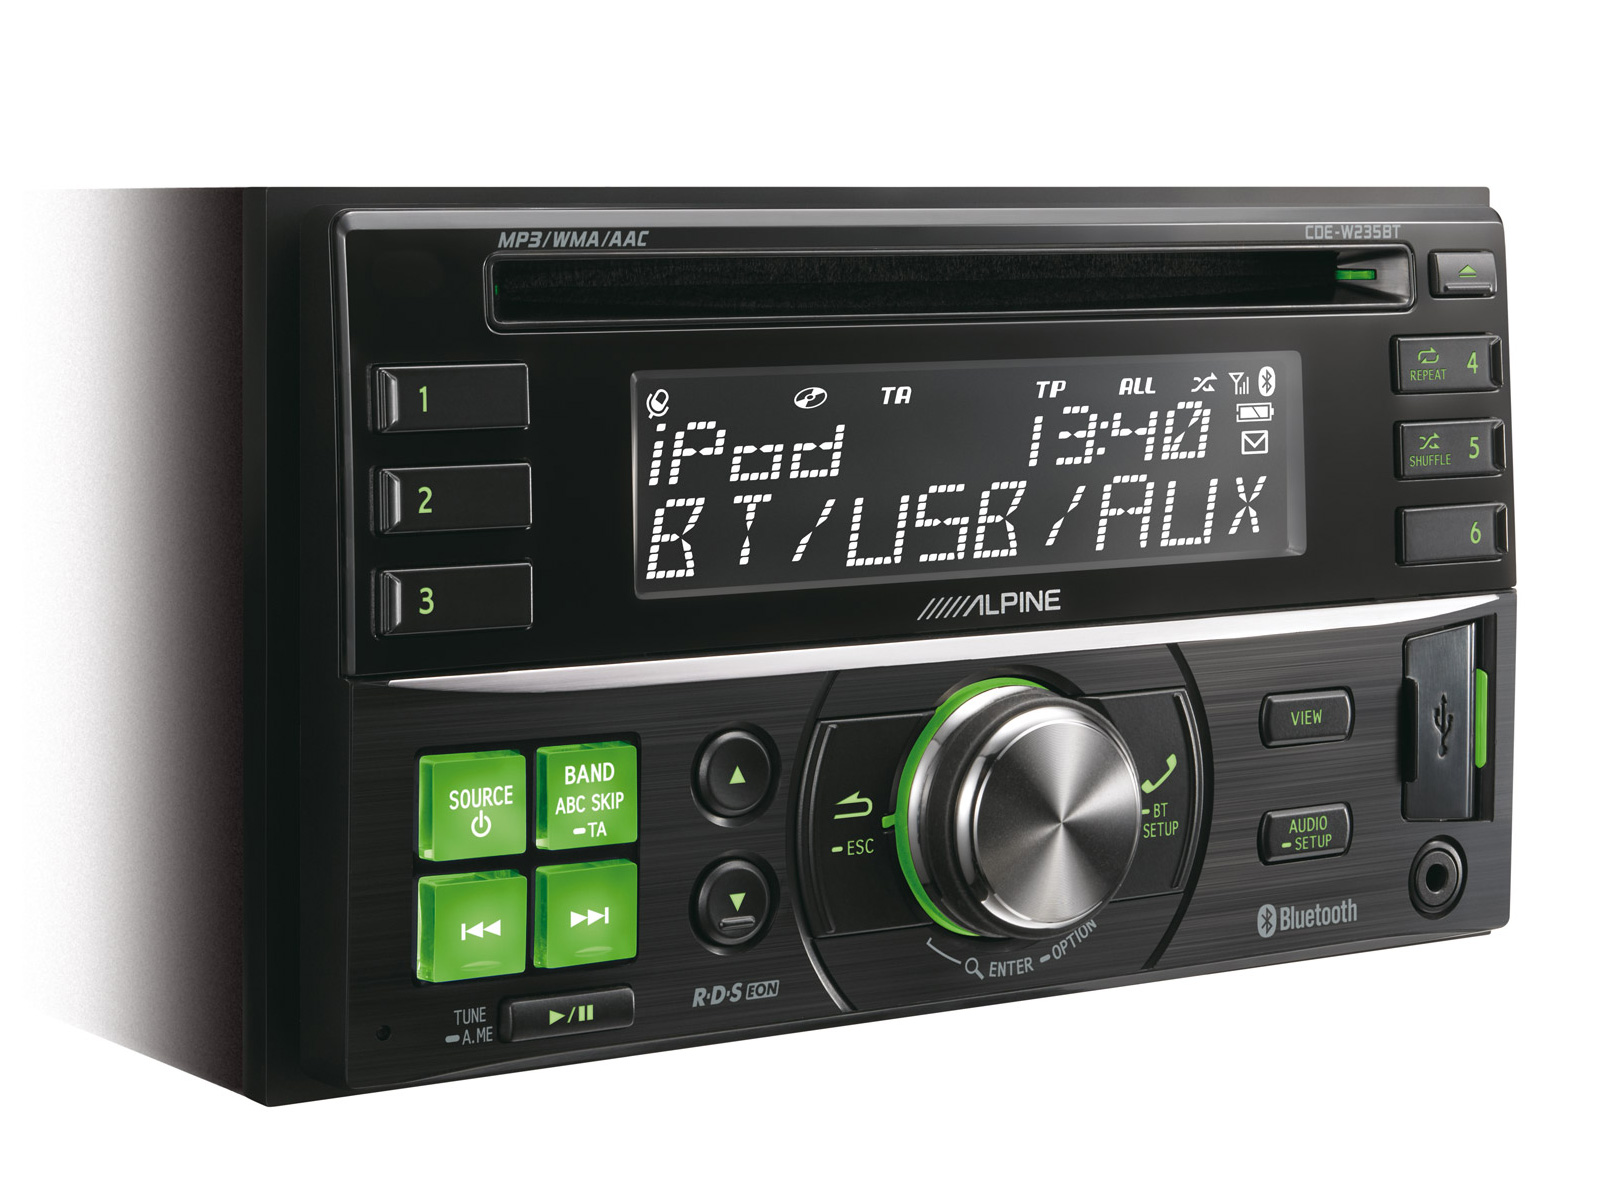 productpic_CDEW235BT_03 2 din cd receiver with advanced bluetooth alpine cde w235bt alpine cde-w235bt wiring diagram at edmiracle.co